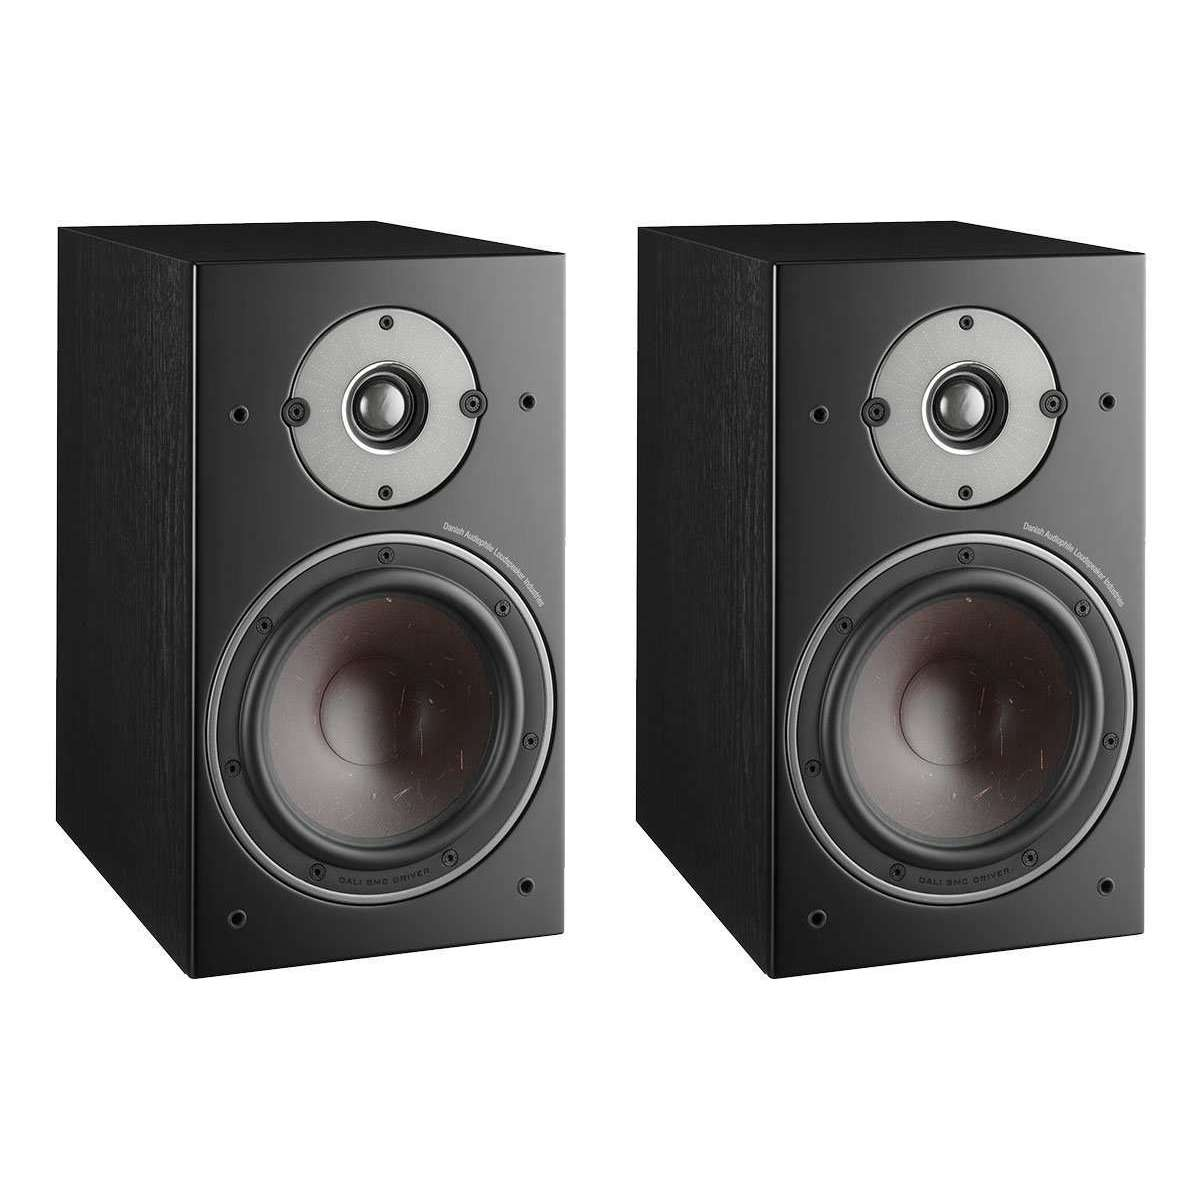 Dali Oberon 3 Bookshelf Speakers - Black - Call SpatialOnline 0345 557 7334